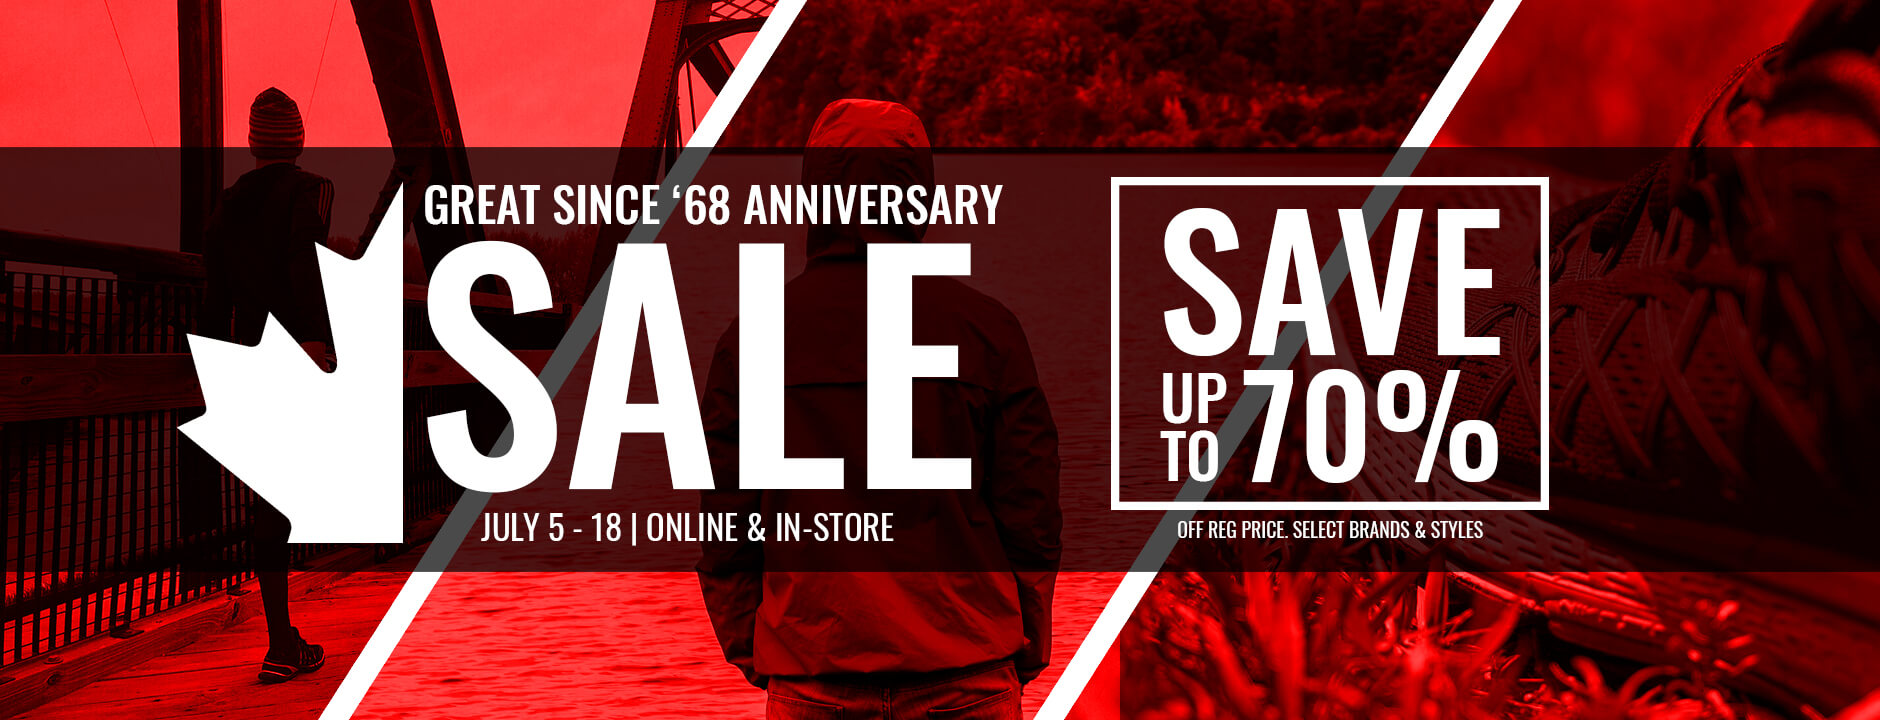 Great Since 68 Anniversary Sale